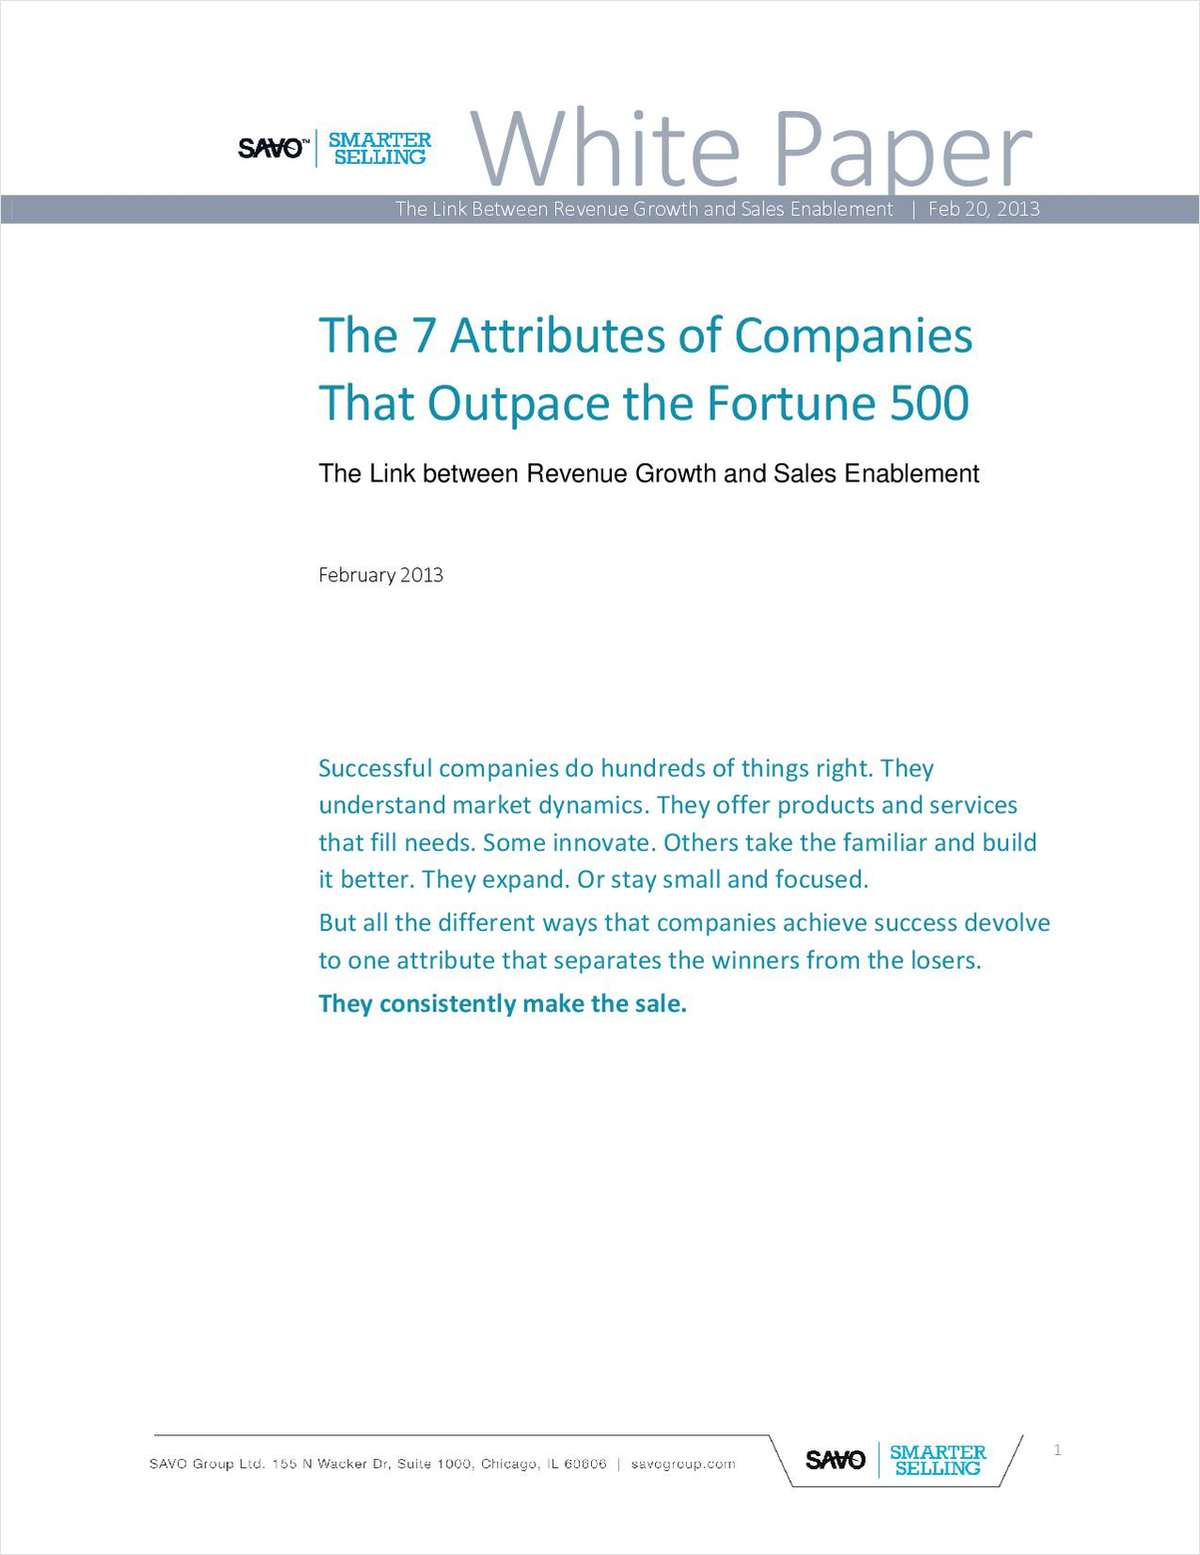 Smarter@Sales: The 7 Attributes of Companies That Outpace the Fortune 500